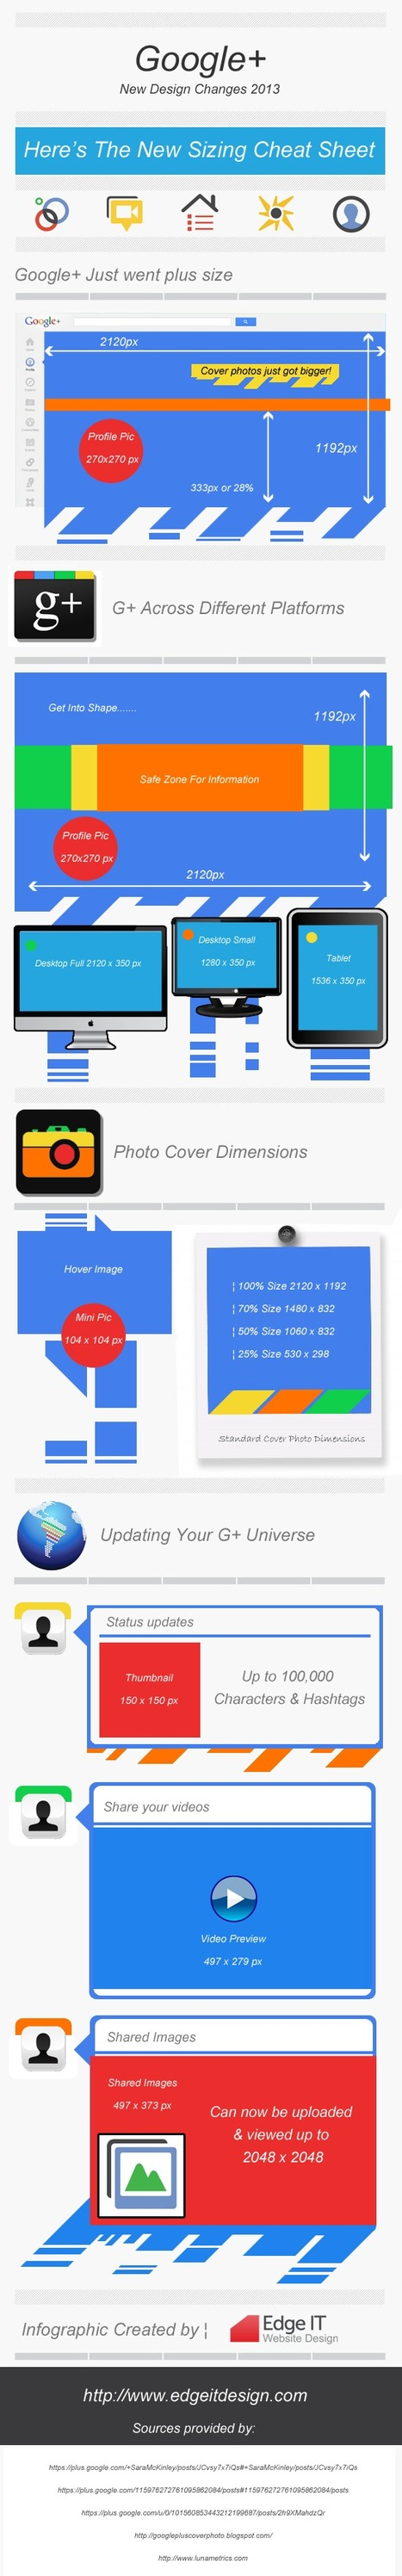 Google+ Design Cheat Sheet [Infographic] | Smart Evolution | Scoop.it